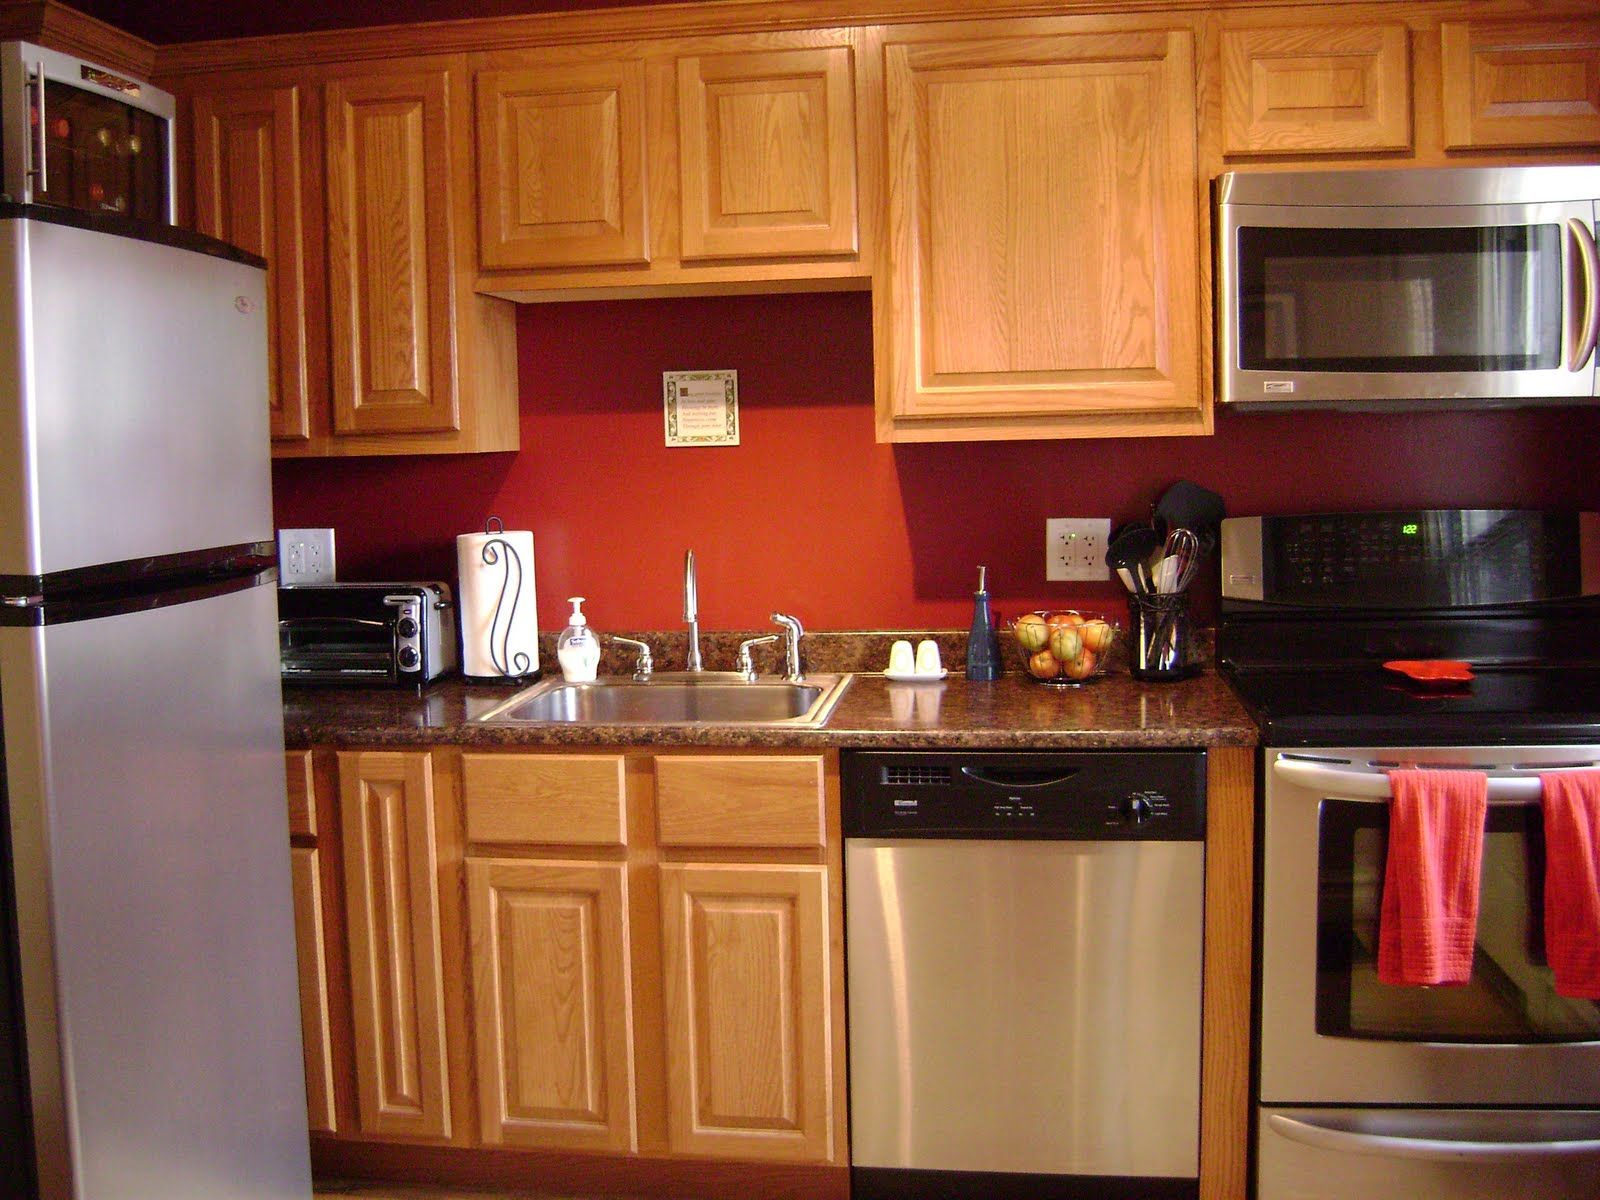 Colors Kitchen Cabinets Kitchen Wall Color Ideas With Oak Cabinets Design Idea